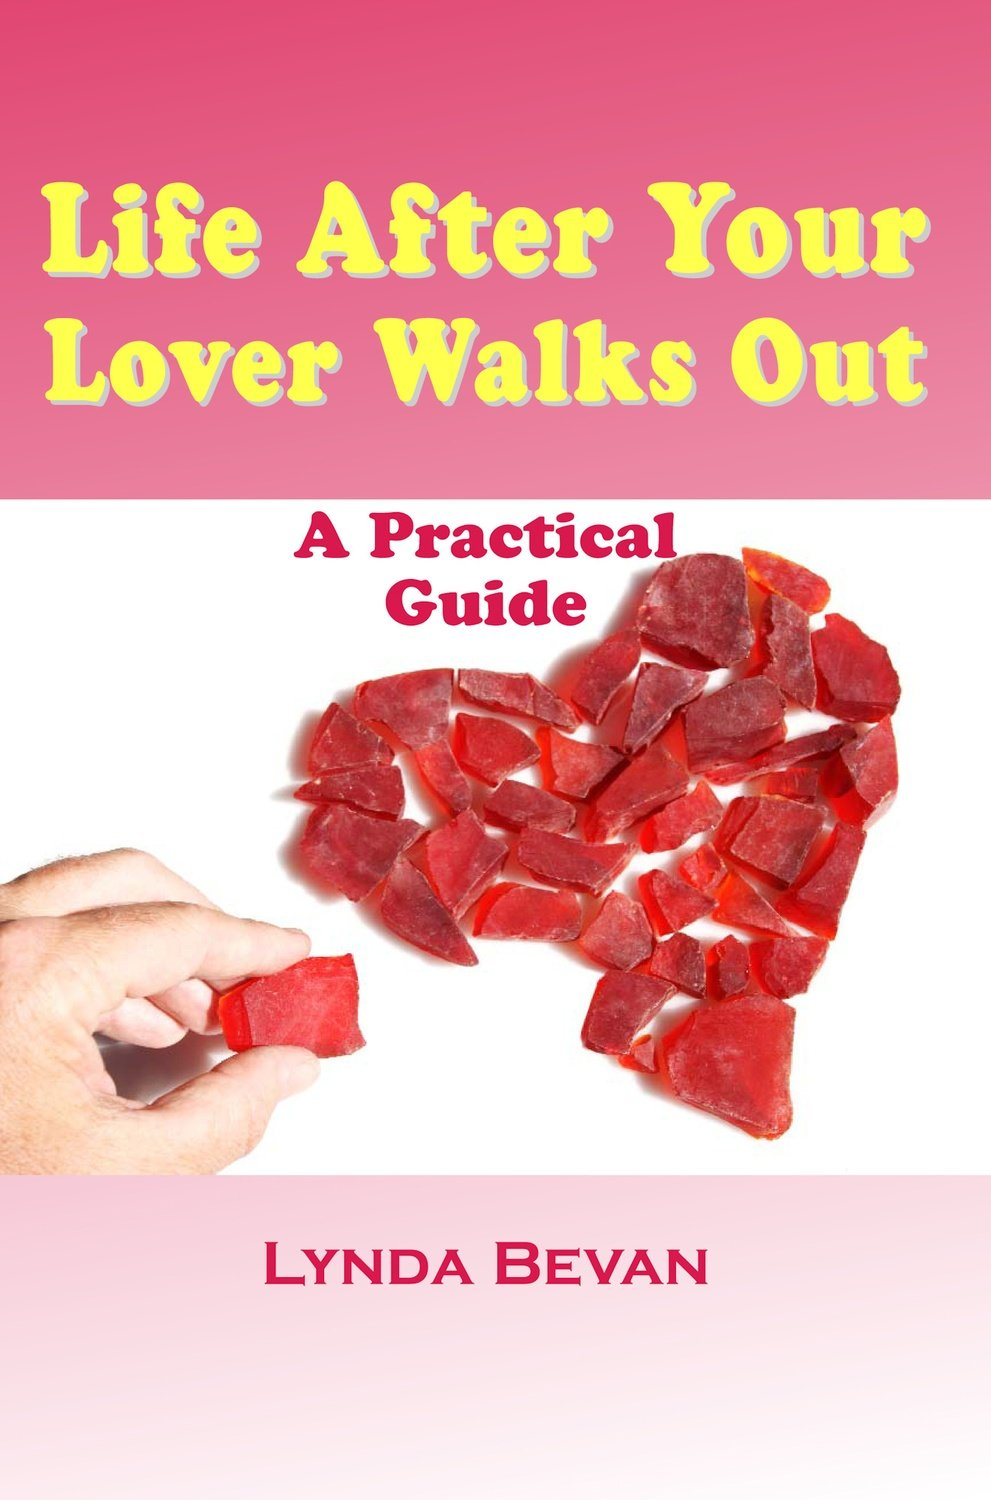 Life After Your Lover Walks Out: A Practical Guide